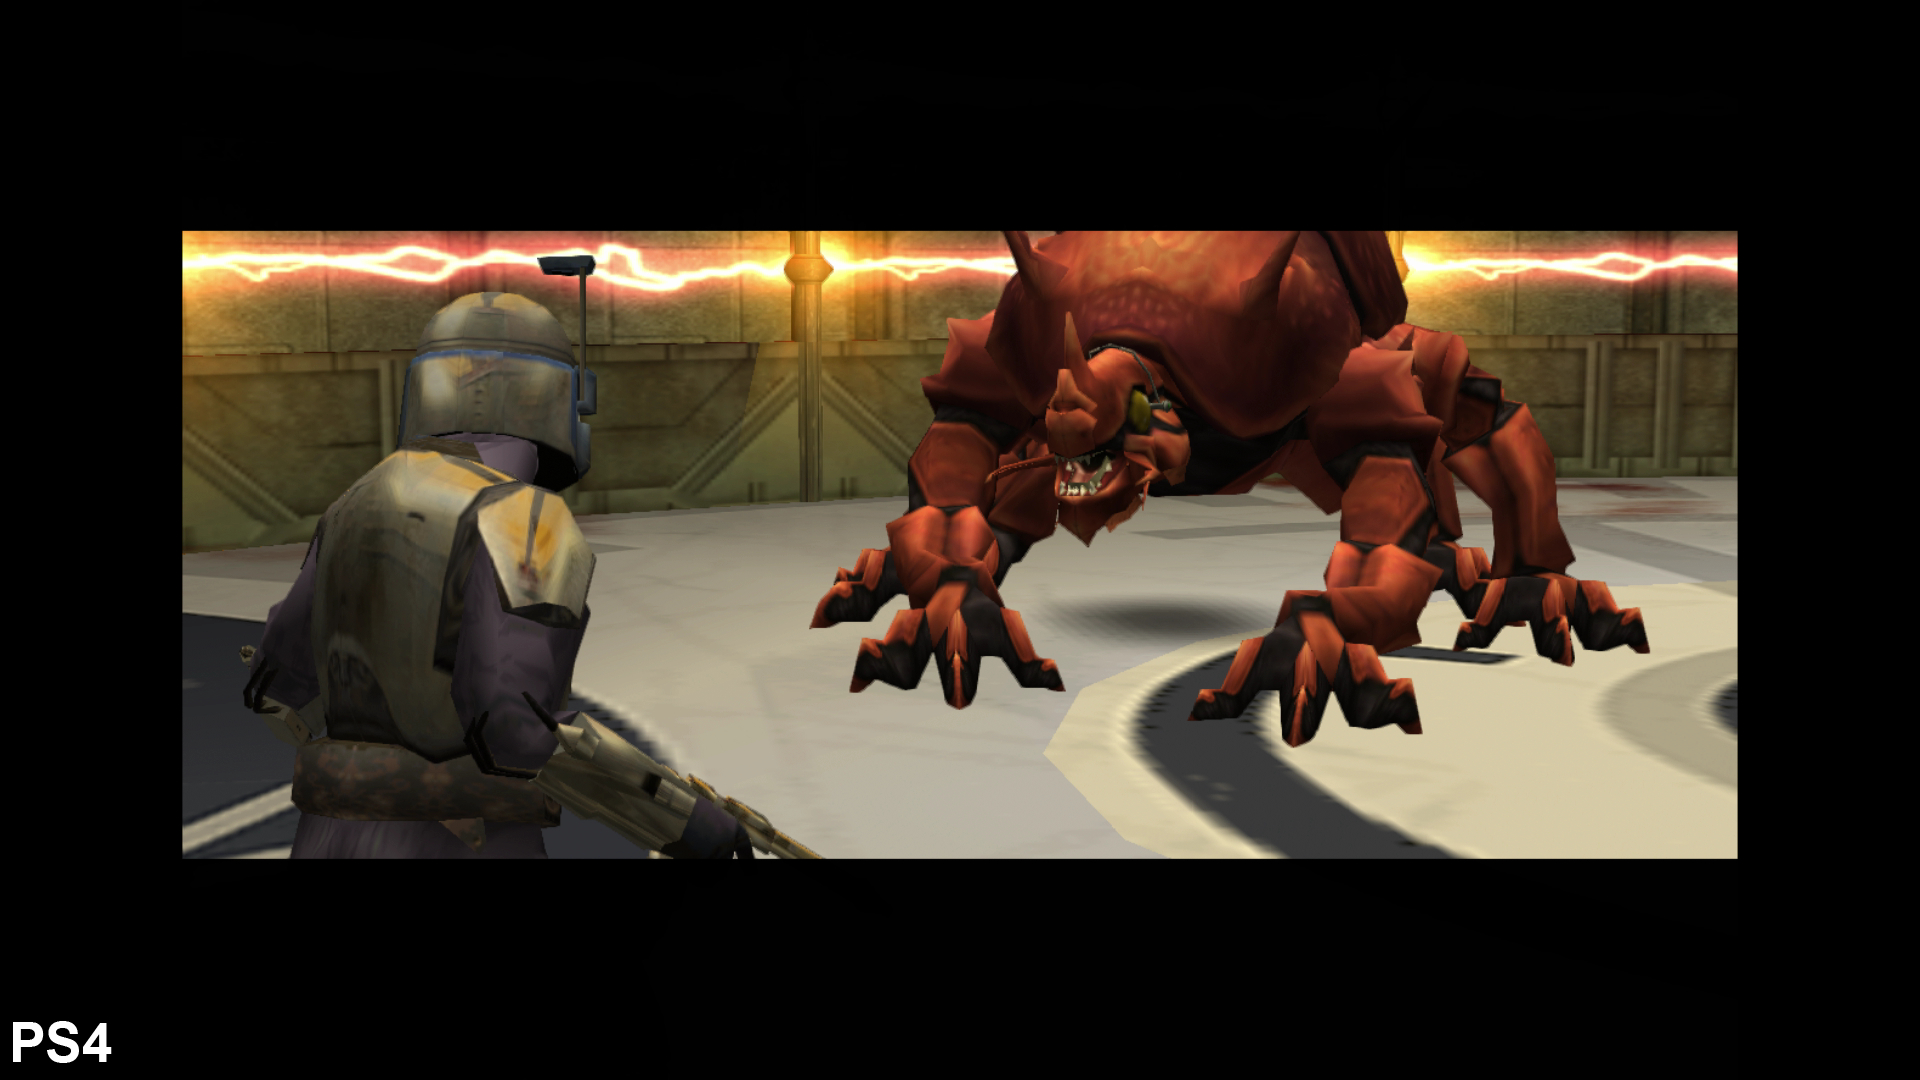 ps4 star wars classics run via ps2 emulation gematsu